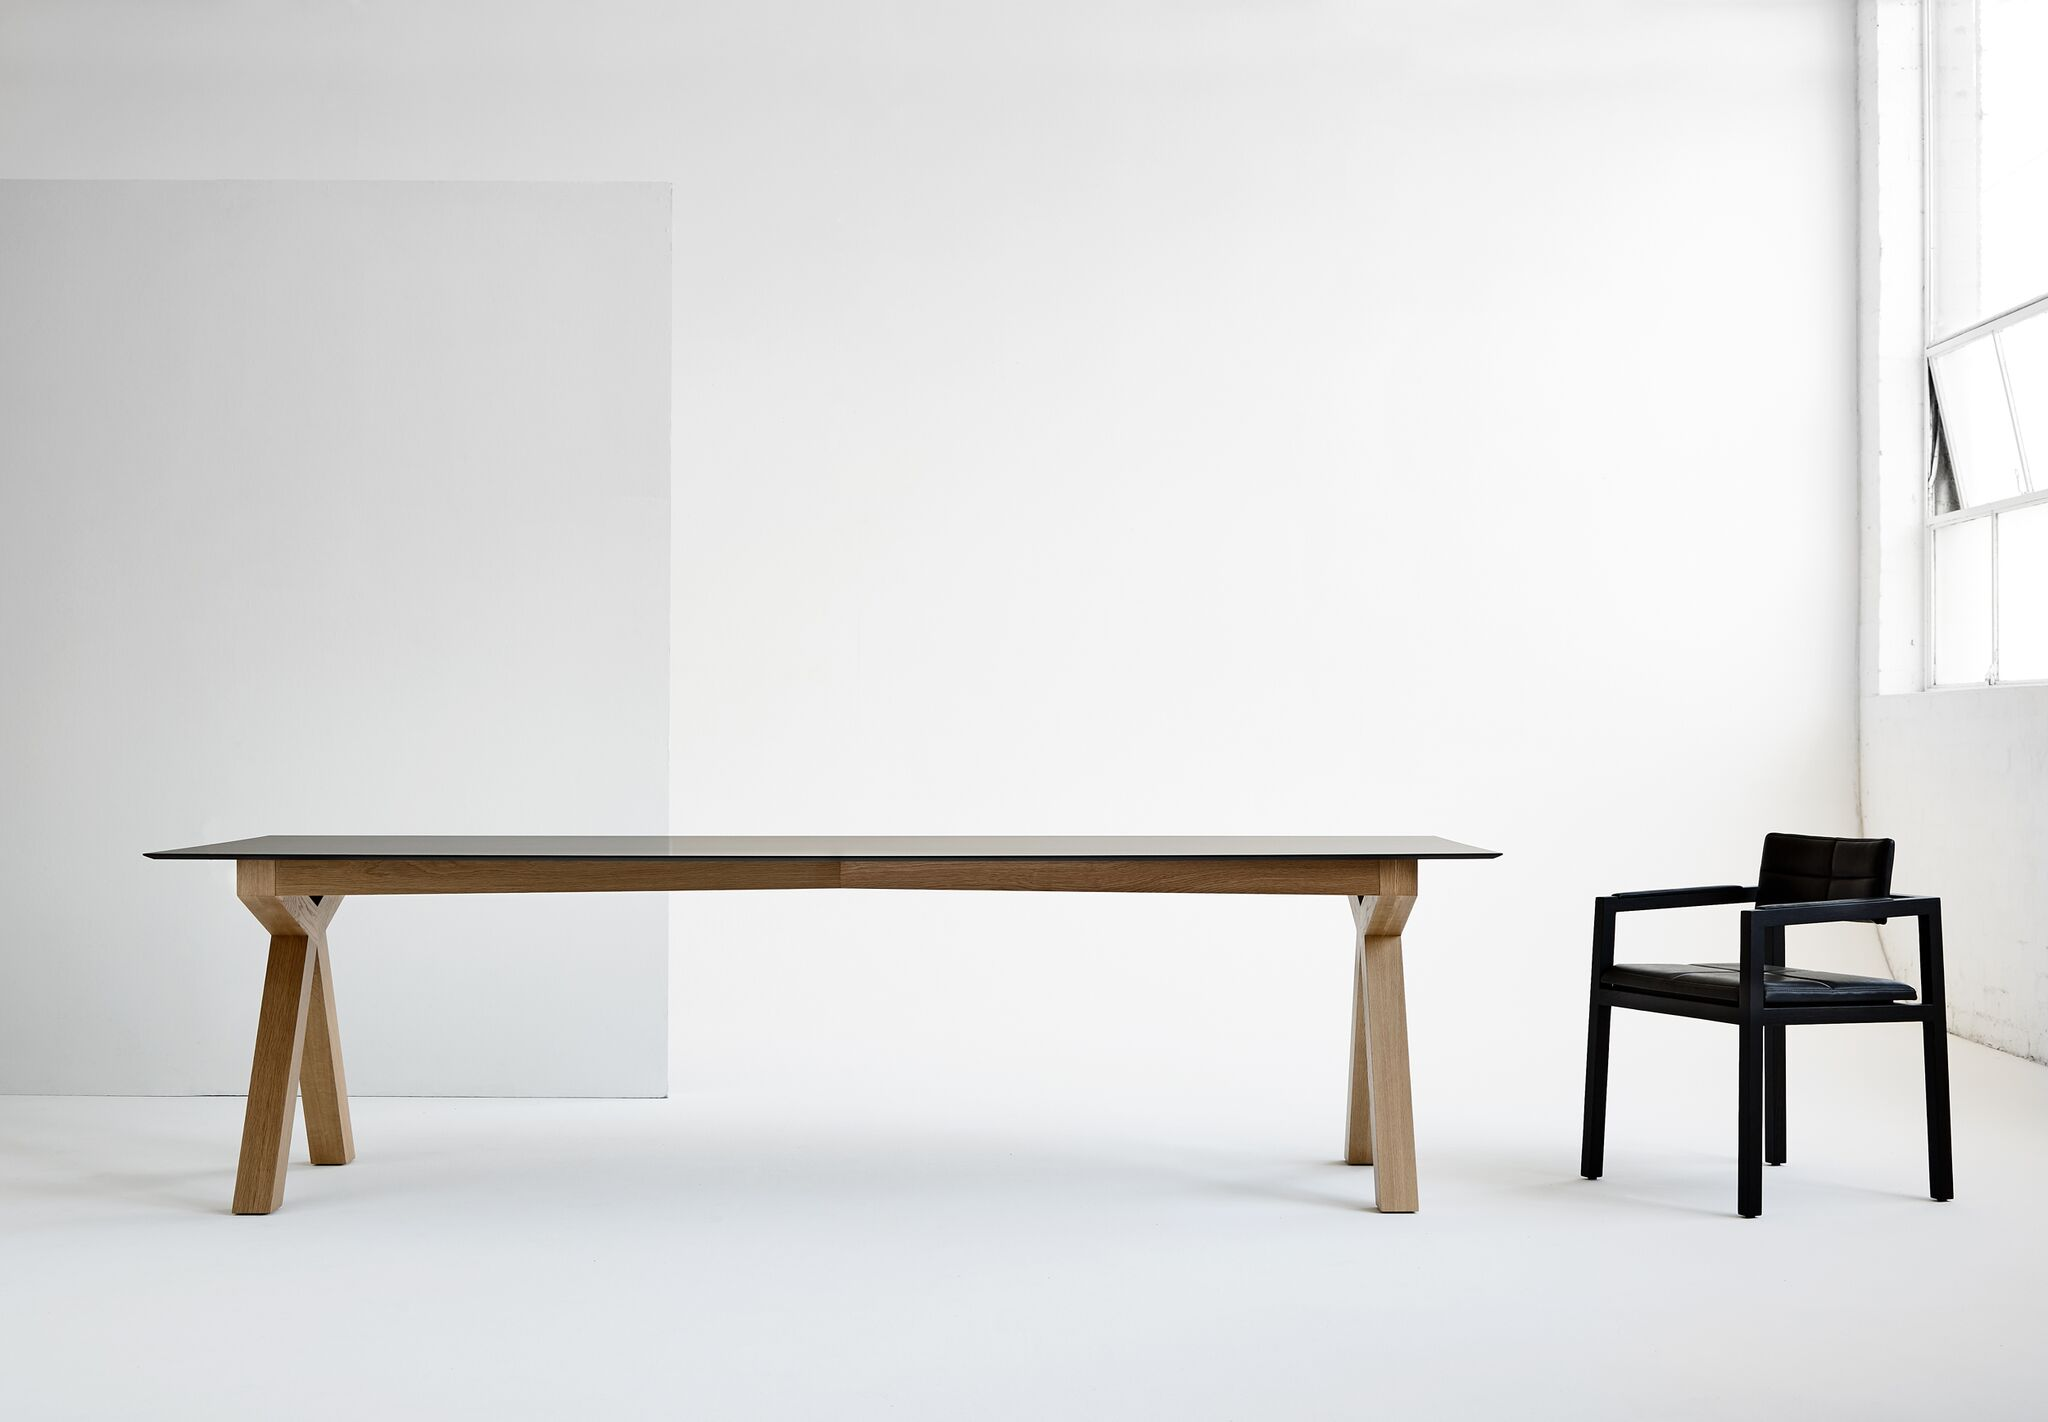 Gallery Of Unity Table By Franco Crea Local Australian Furniture Designer & Maker Richmond, Melbourne Image 2